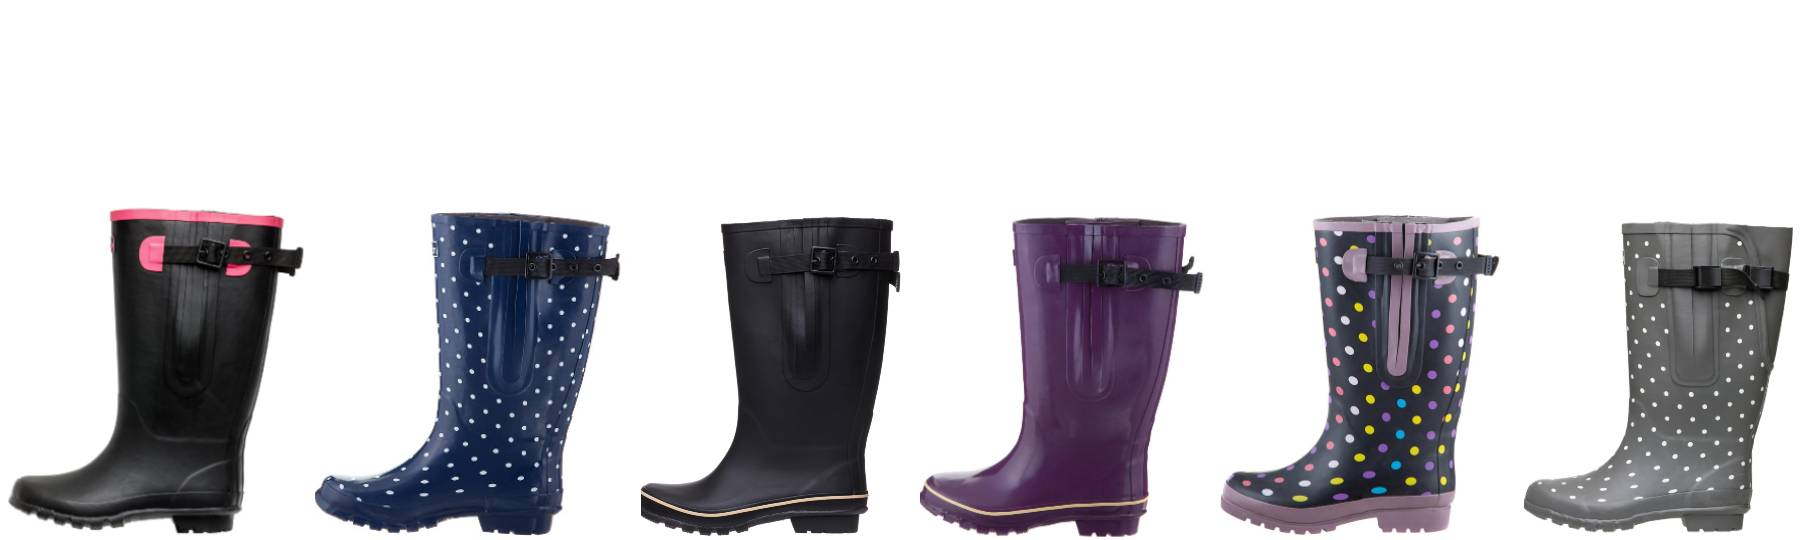 Extra Wide Calf Wellies up to 50cm